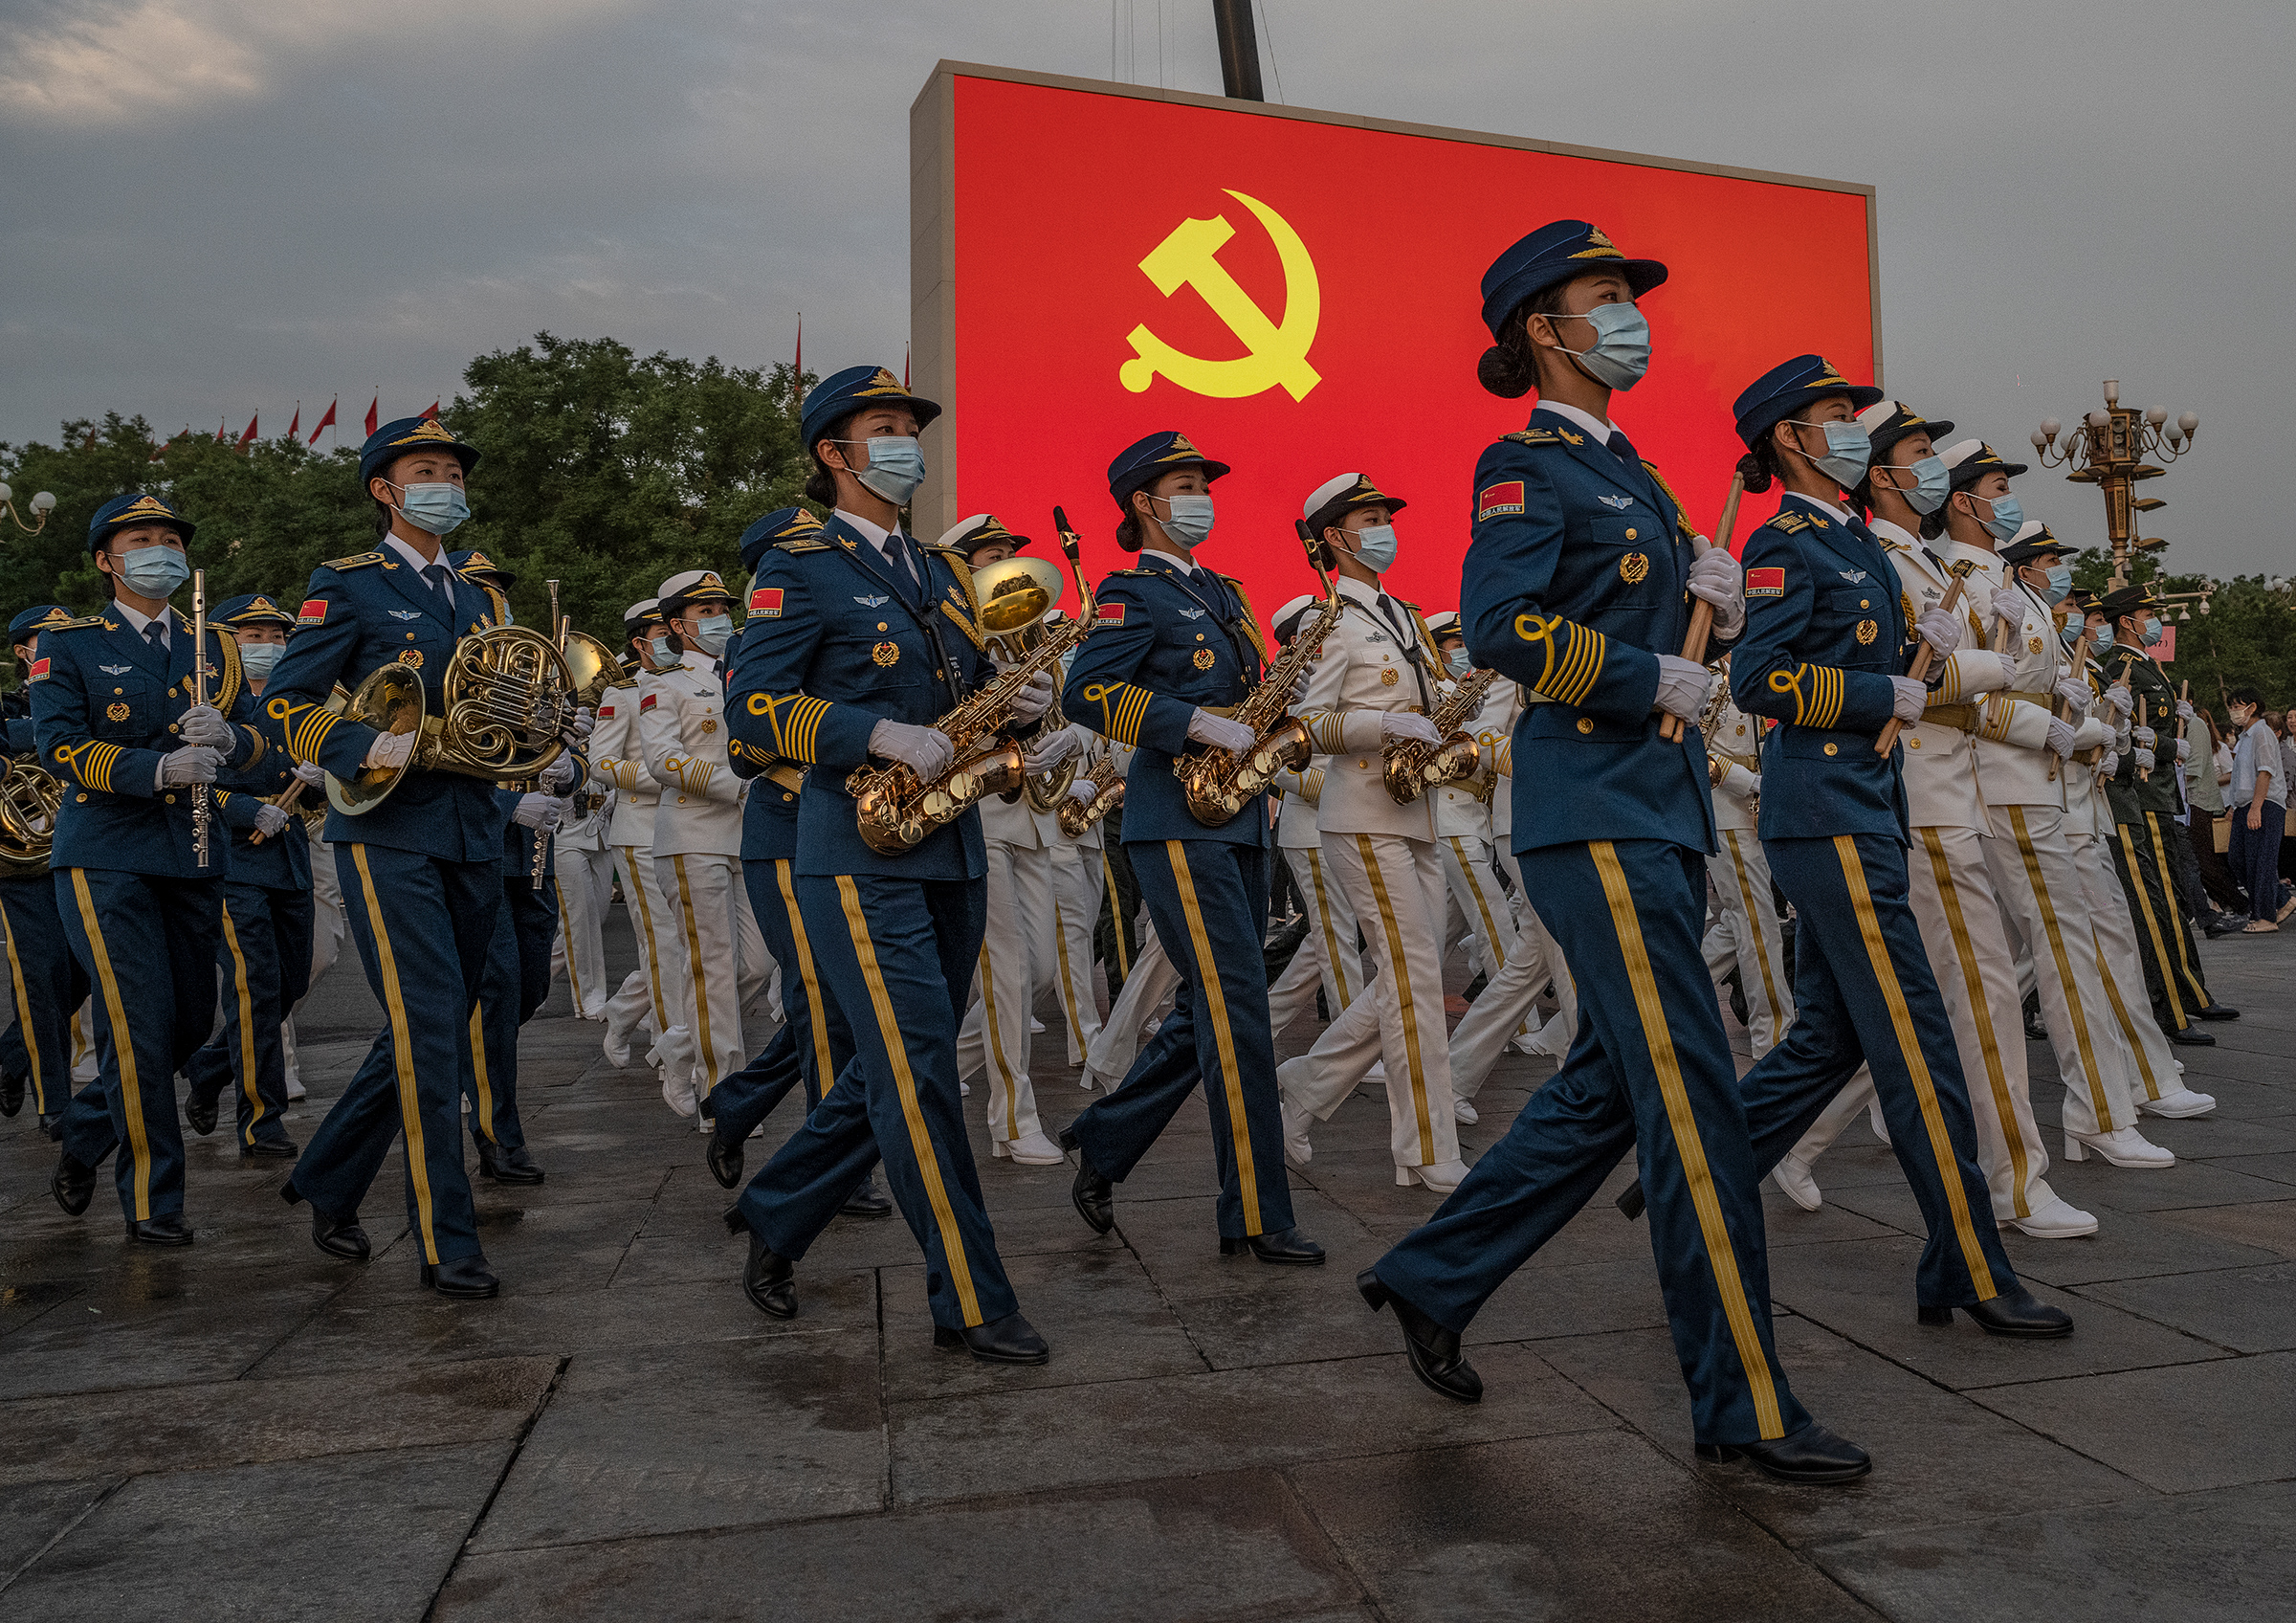 Female members of a People's Liberation Army ceremonial band march at a ceremony marking the 100th anniversary of the Chinese Communist Party in Beijing's Tiananmen Square on July 1.